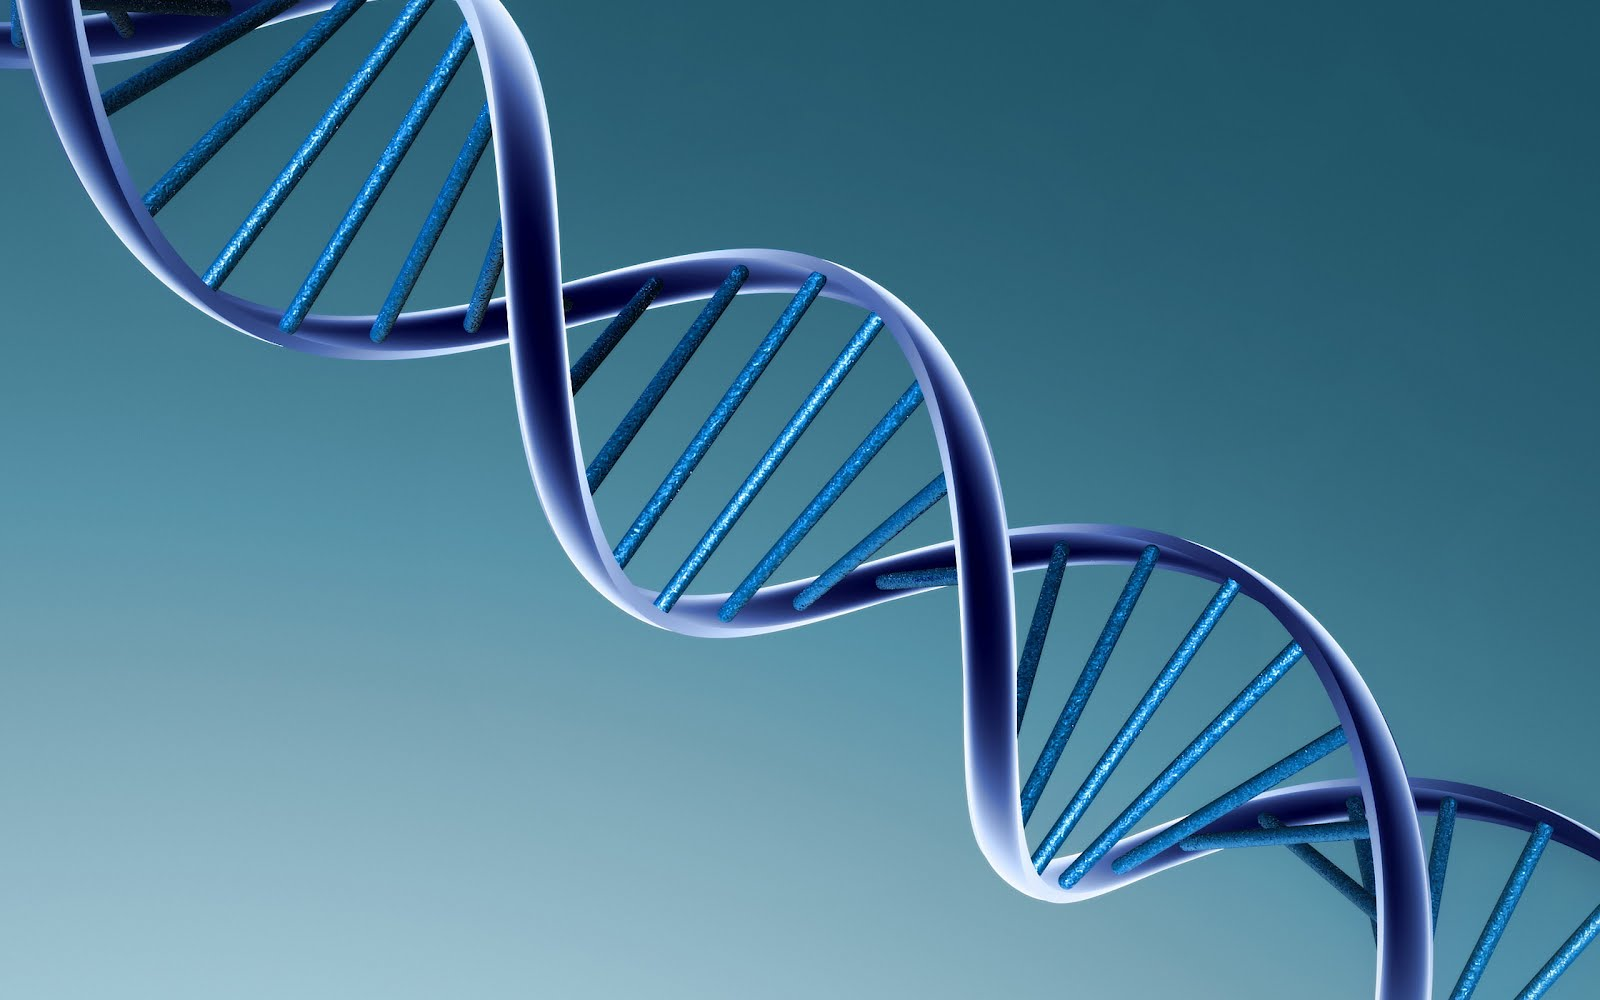 Dna Fingerprinting Diagram Perko Marine Battery Switch Wiring Unseen Rare Collection Background 3d Border Band